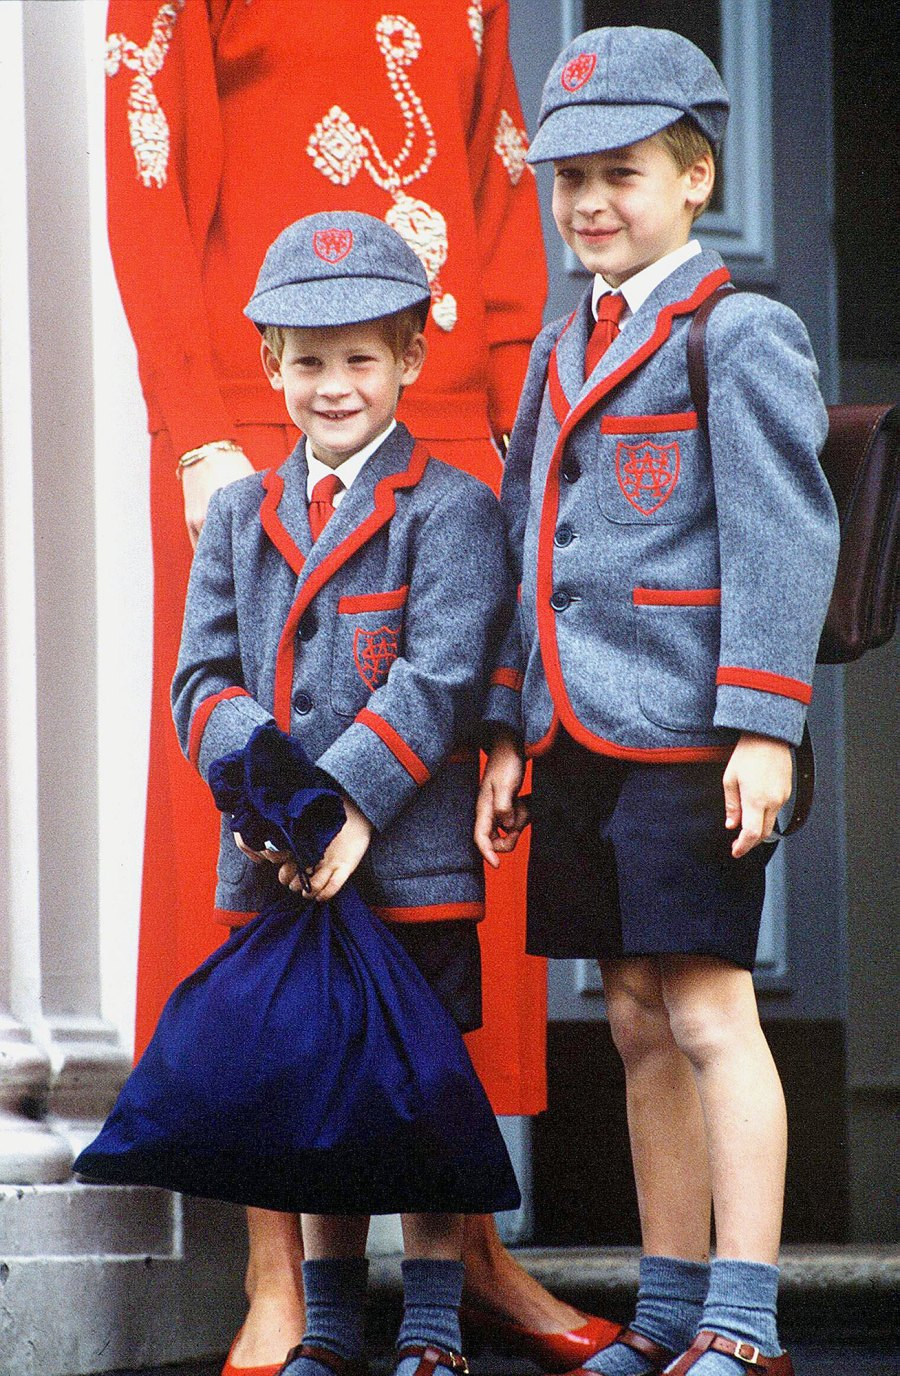 Princess Diana taking Prince William and Henry Harry to Wetherby school in London in 1989